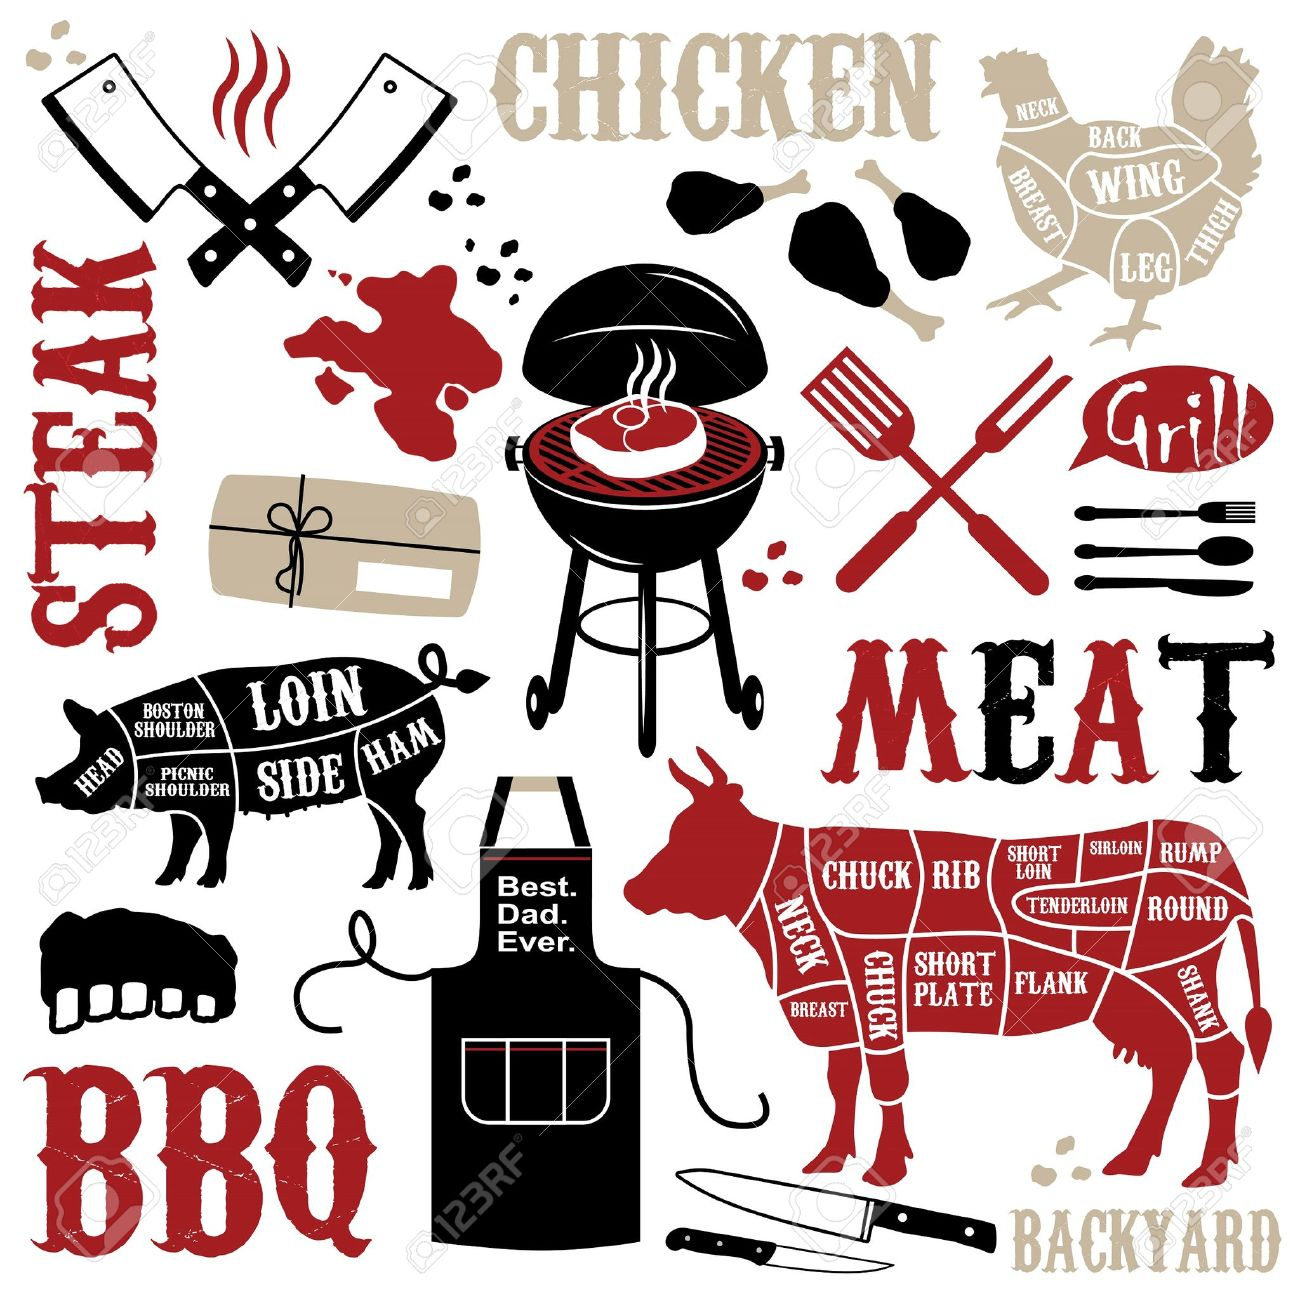 Barbecue clipart bbq rib 704 1 lunch Illustrations collection